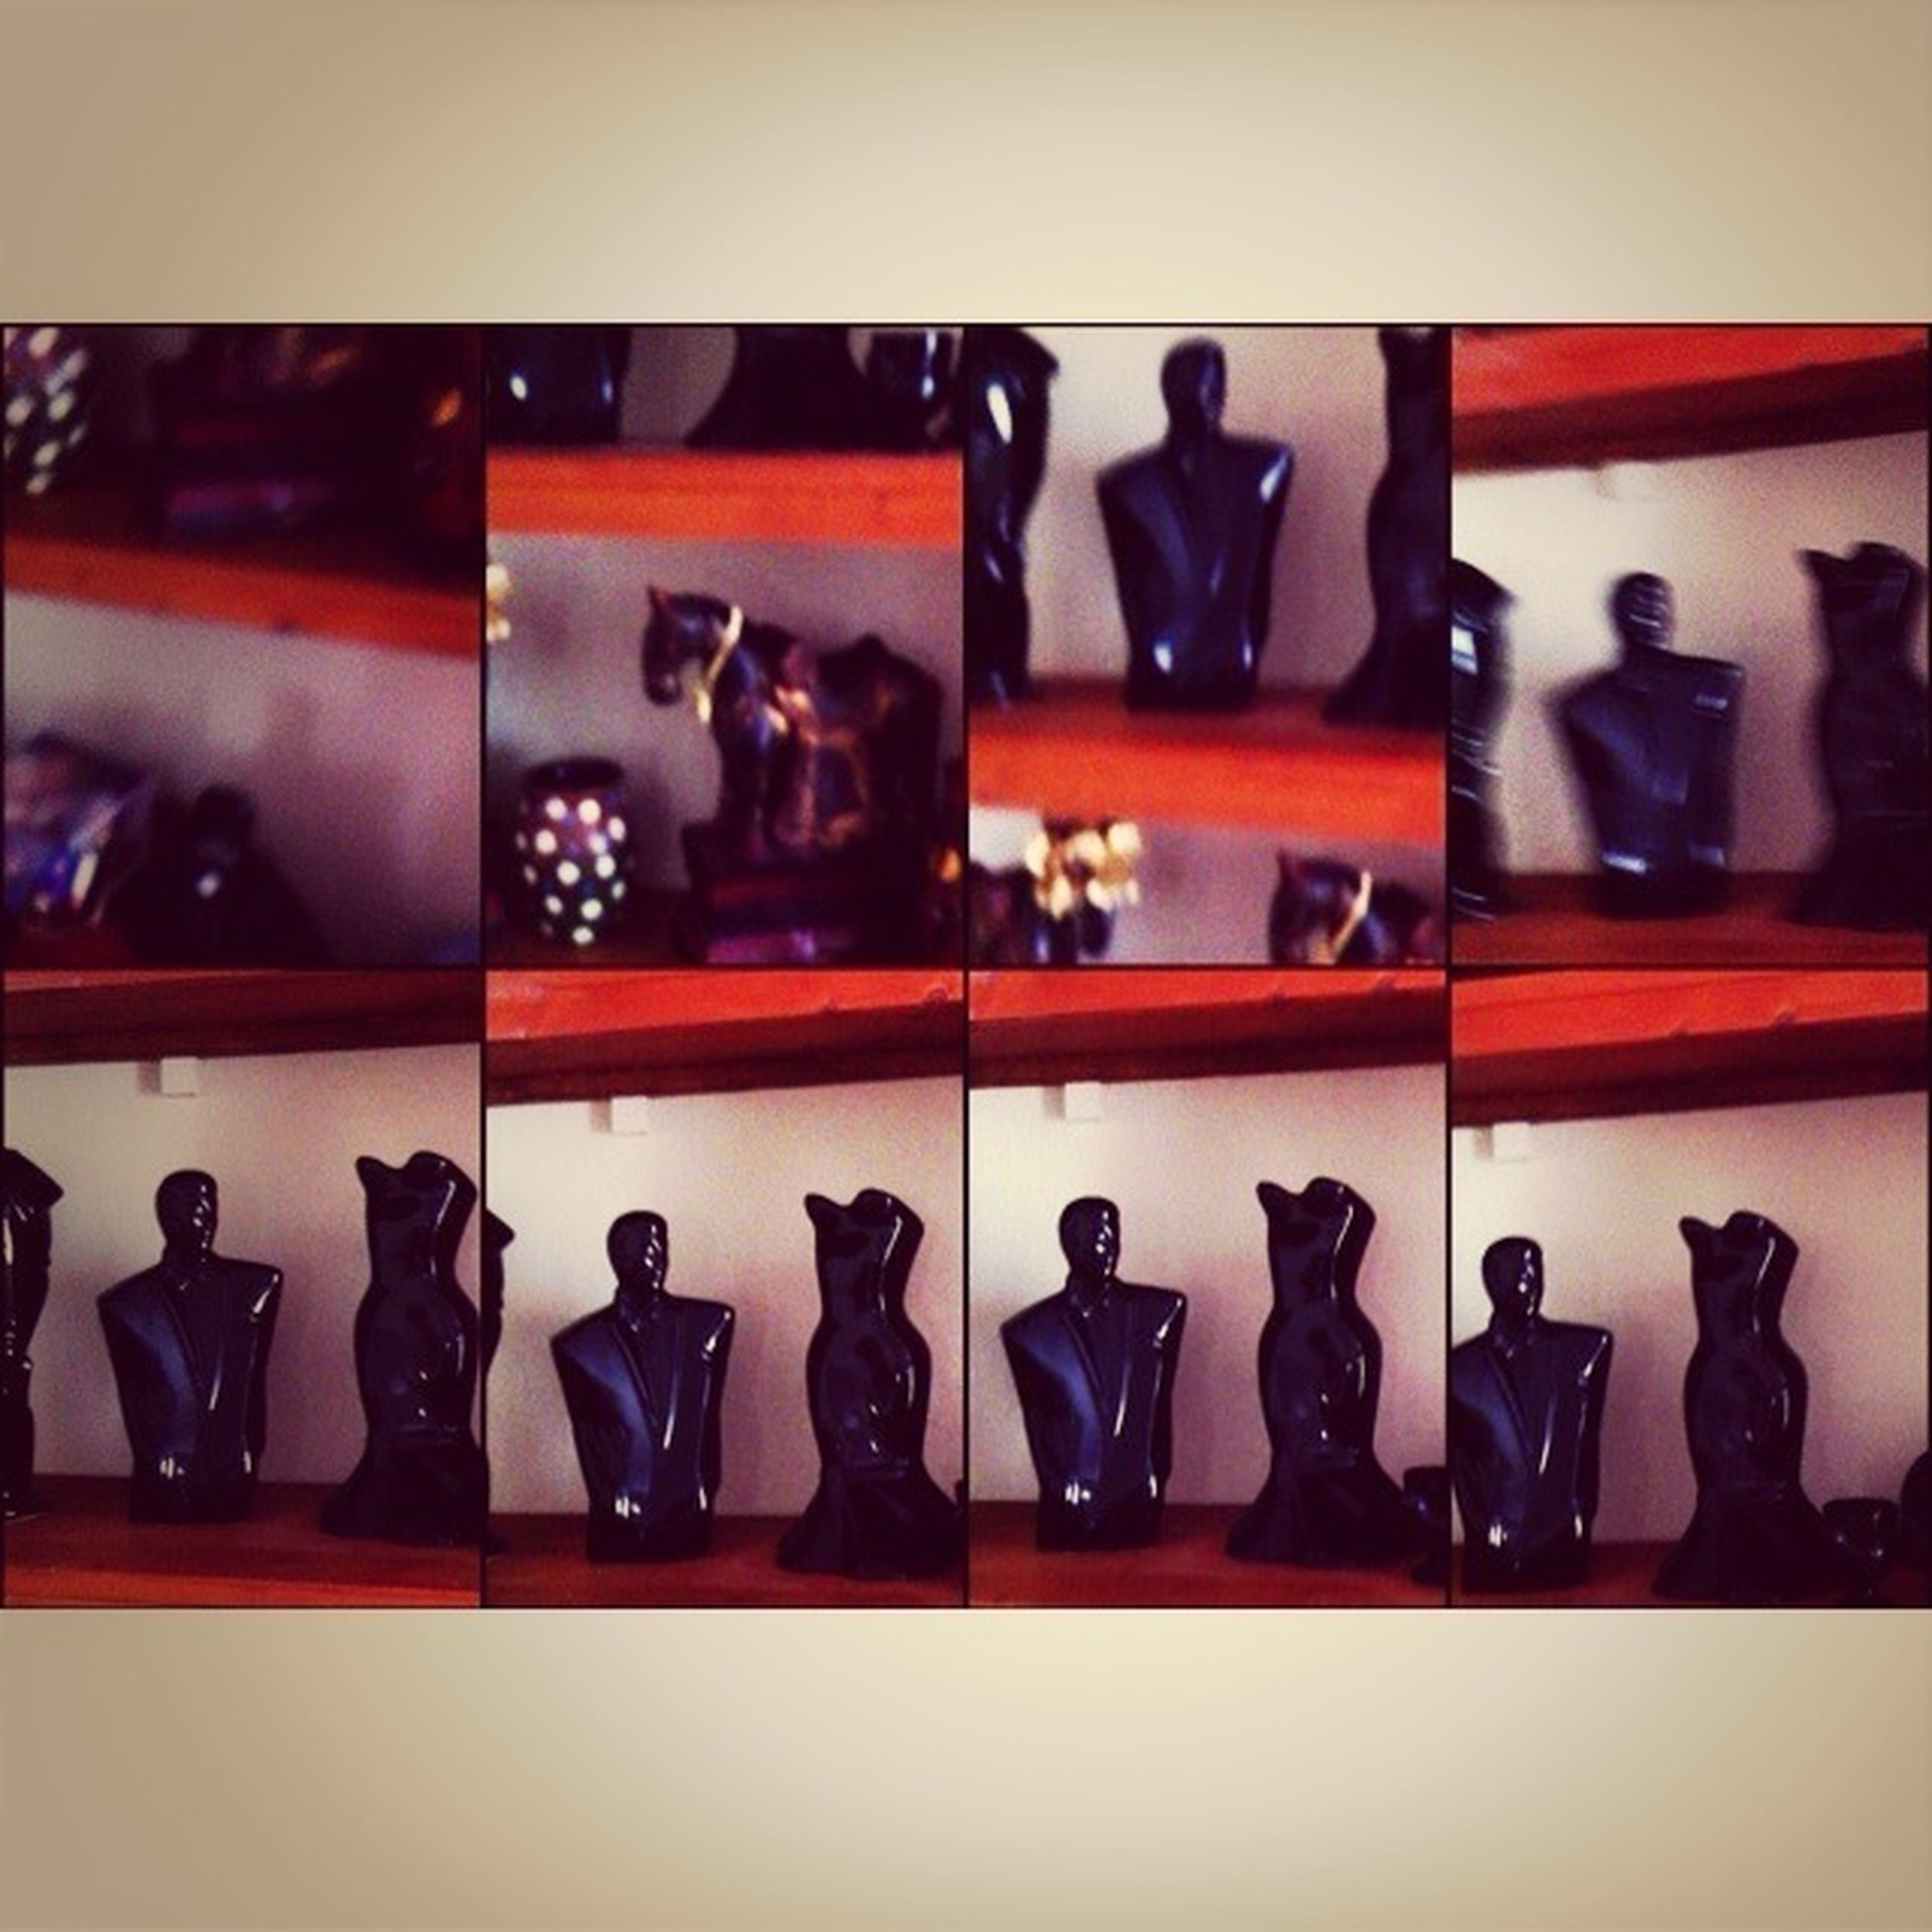 indoors, variation, large group of objects, arrangement, in a row, shelf, choice, abundance, side by side, order, still life, retail, store, collection, bottle, table, display, for sale, repetition, shop